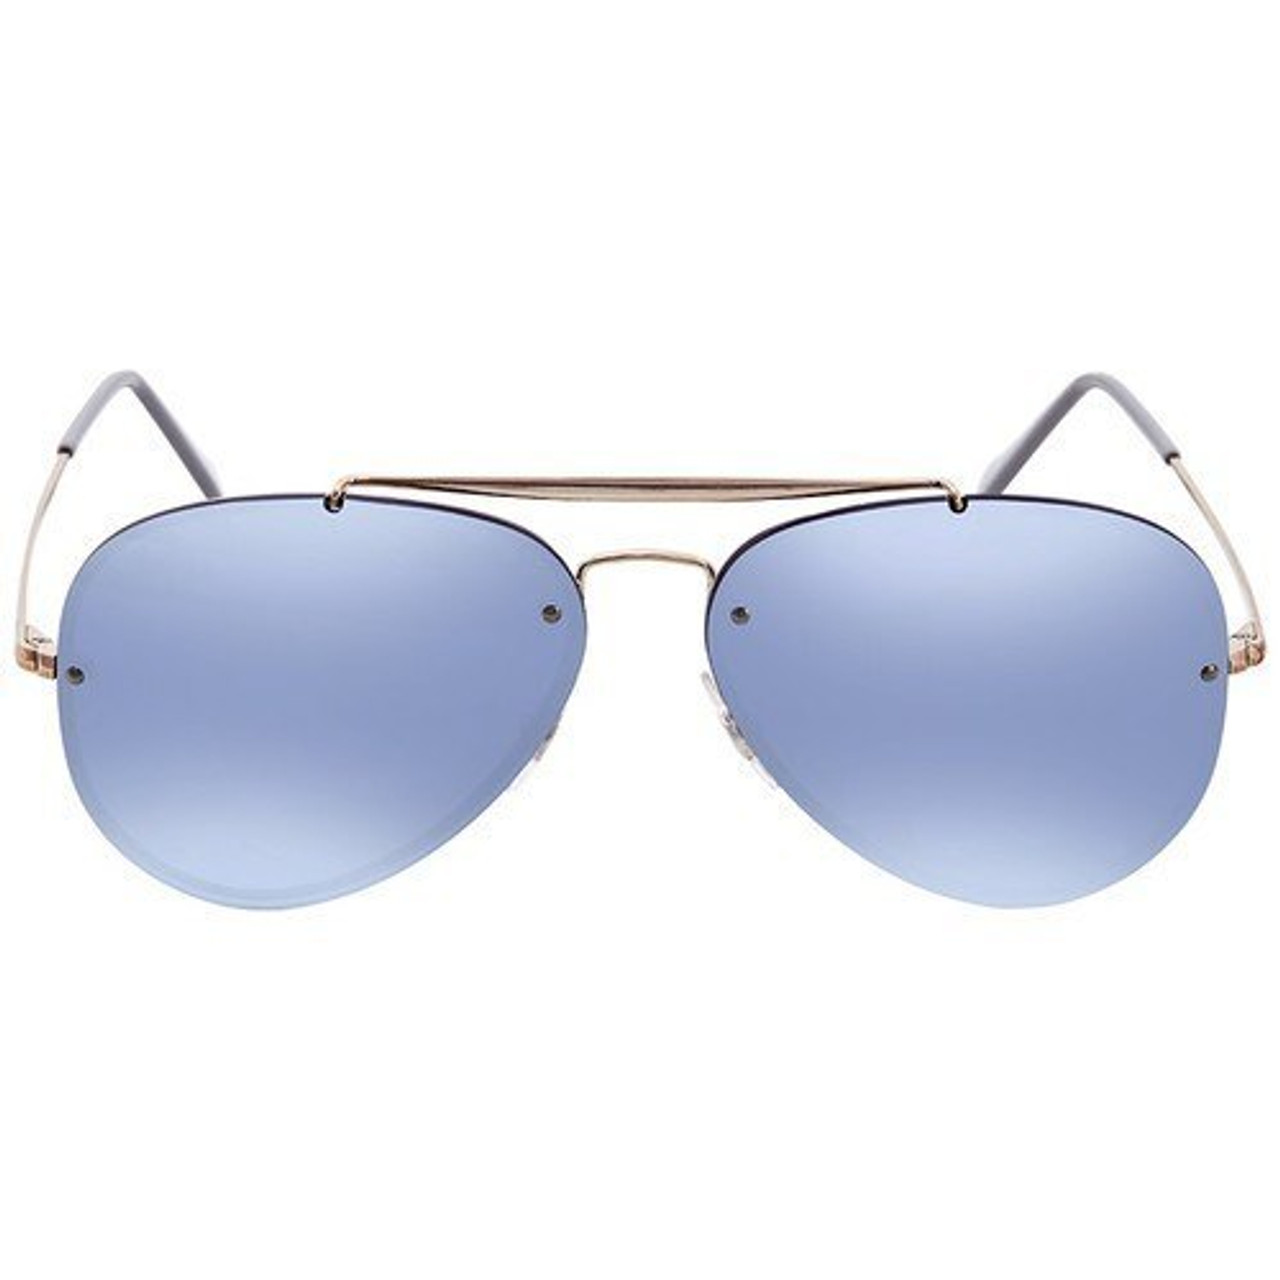 ff3e36255db Ray-Ban Highstreet Blaze Aviators In Copper Bronze Violet Mirror - CHROME